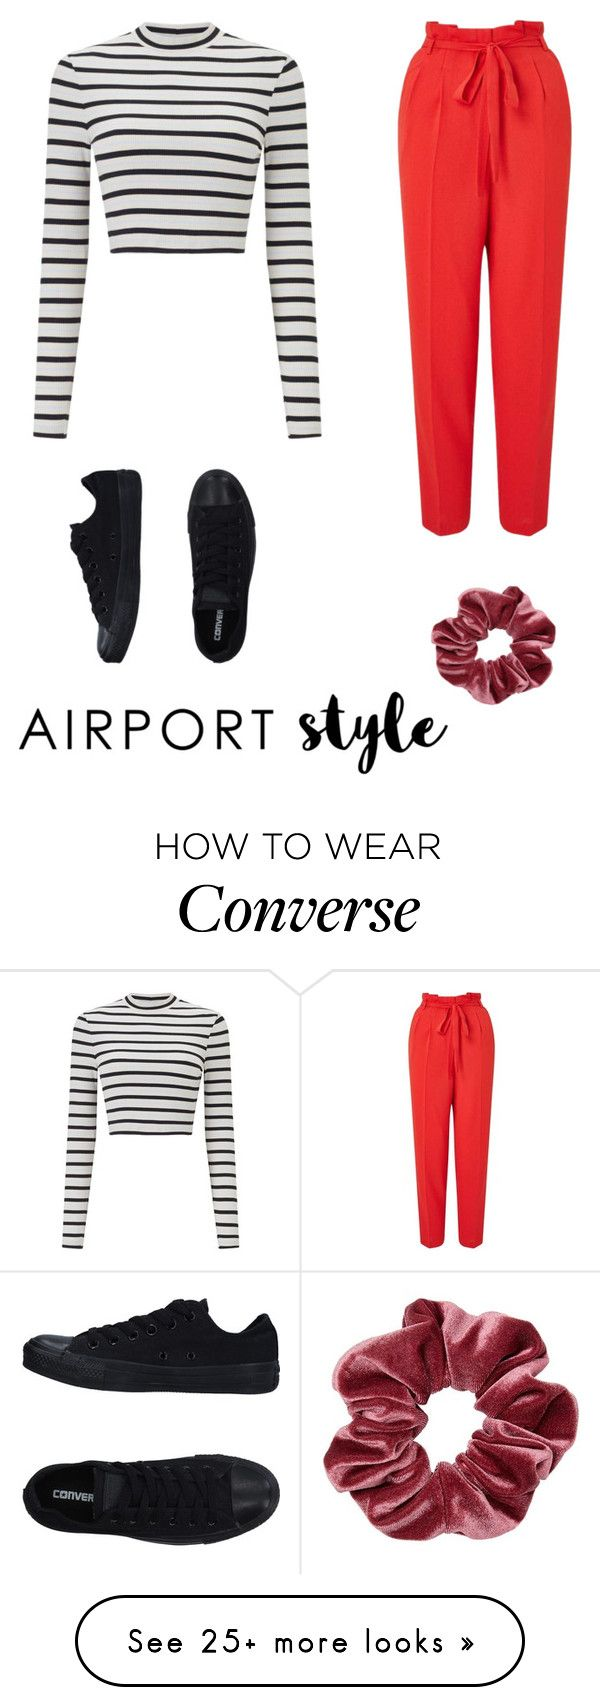 """Untitled #34"" by gracemolenhouse on Polyvore featuring Miss Selfridge, Converse and airportstyle"